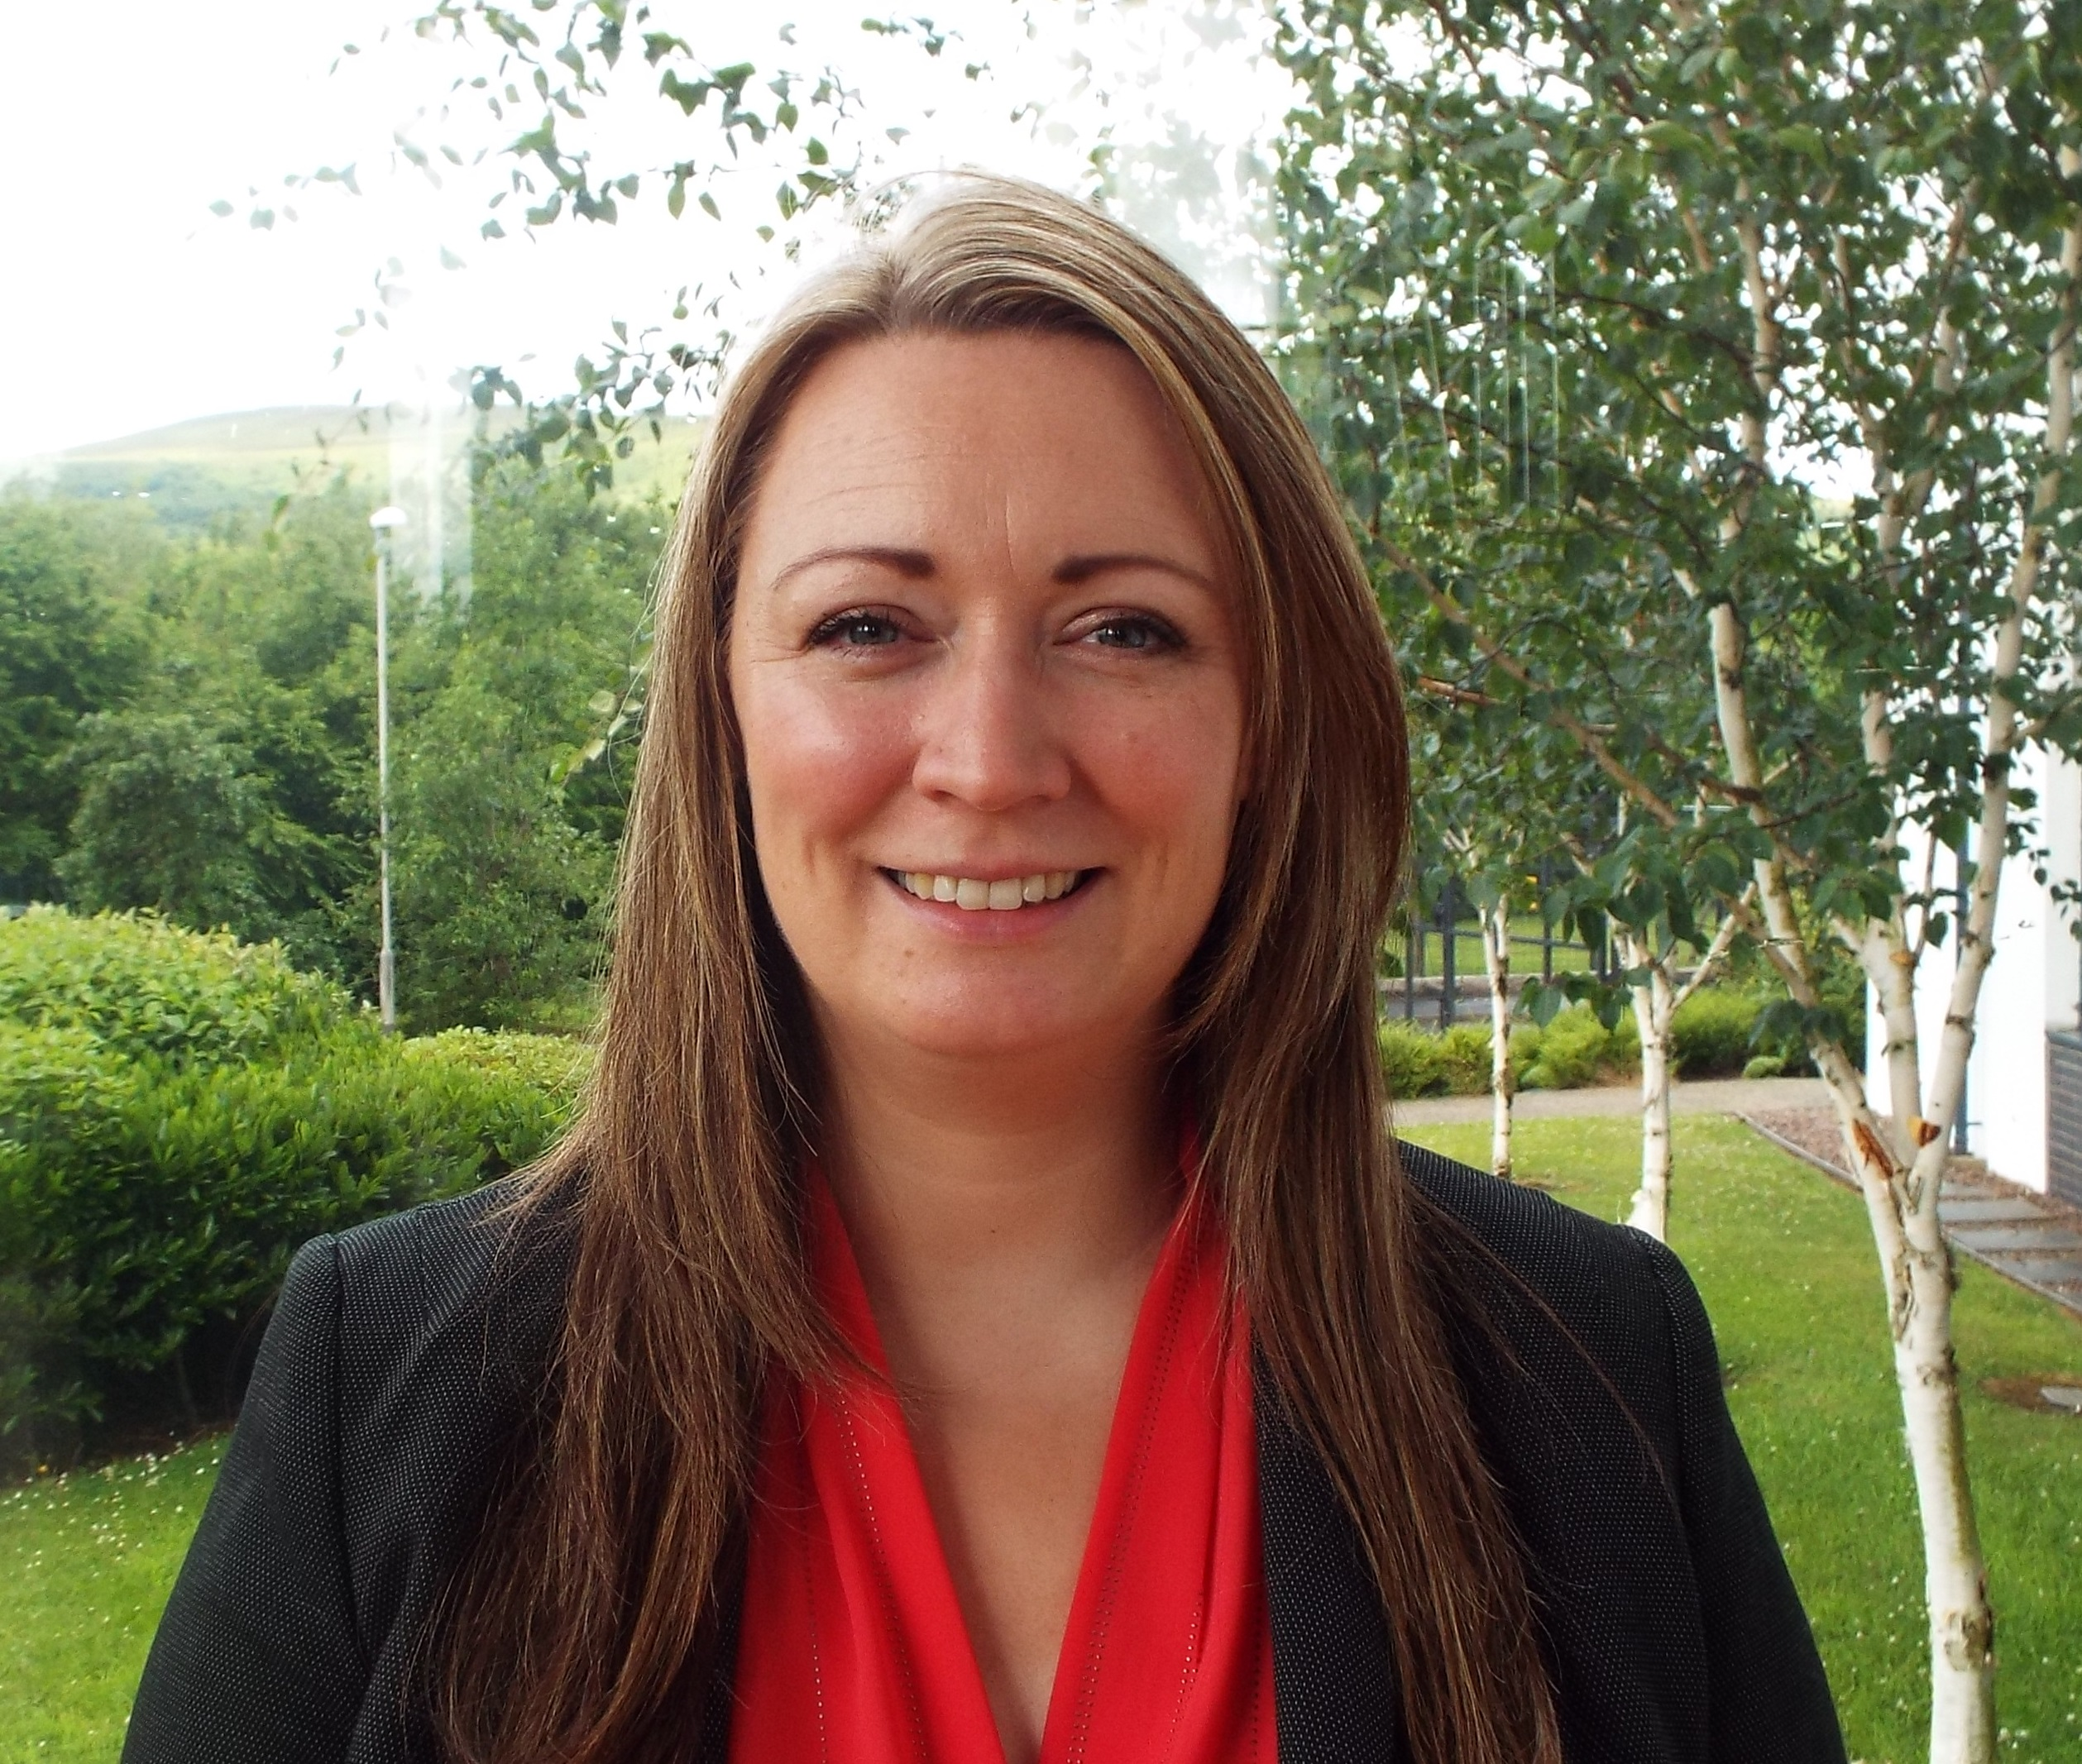 Roisin Gilmartin - Project Manager